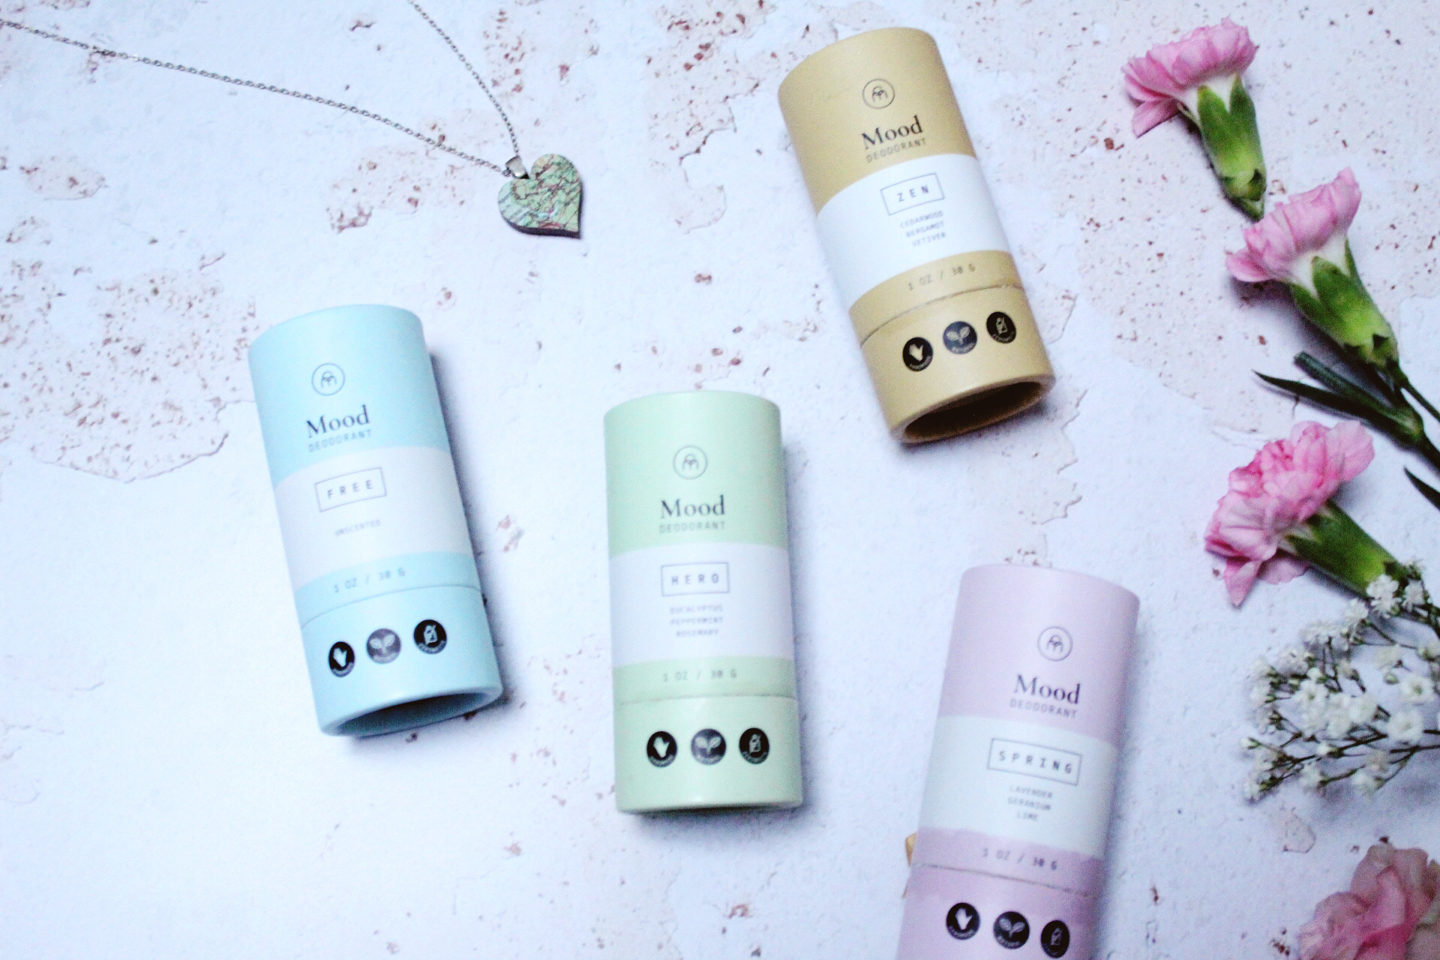 Low-waste deodorants in paper-based packaging